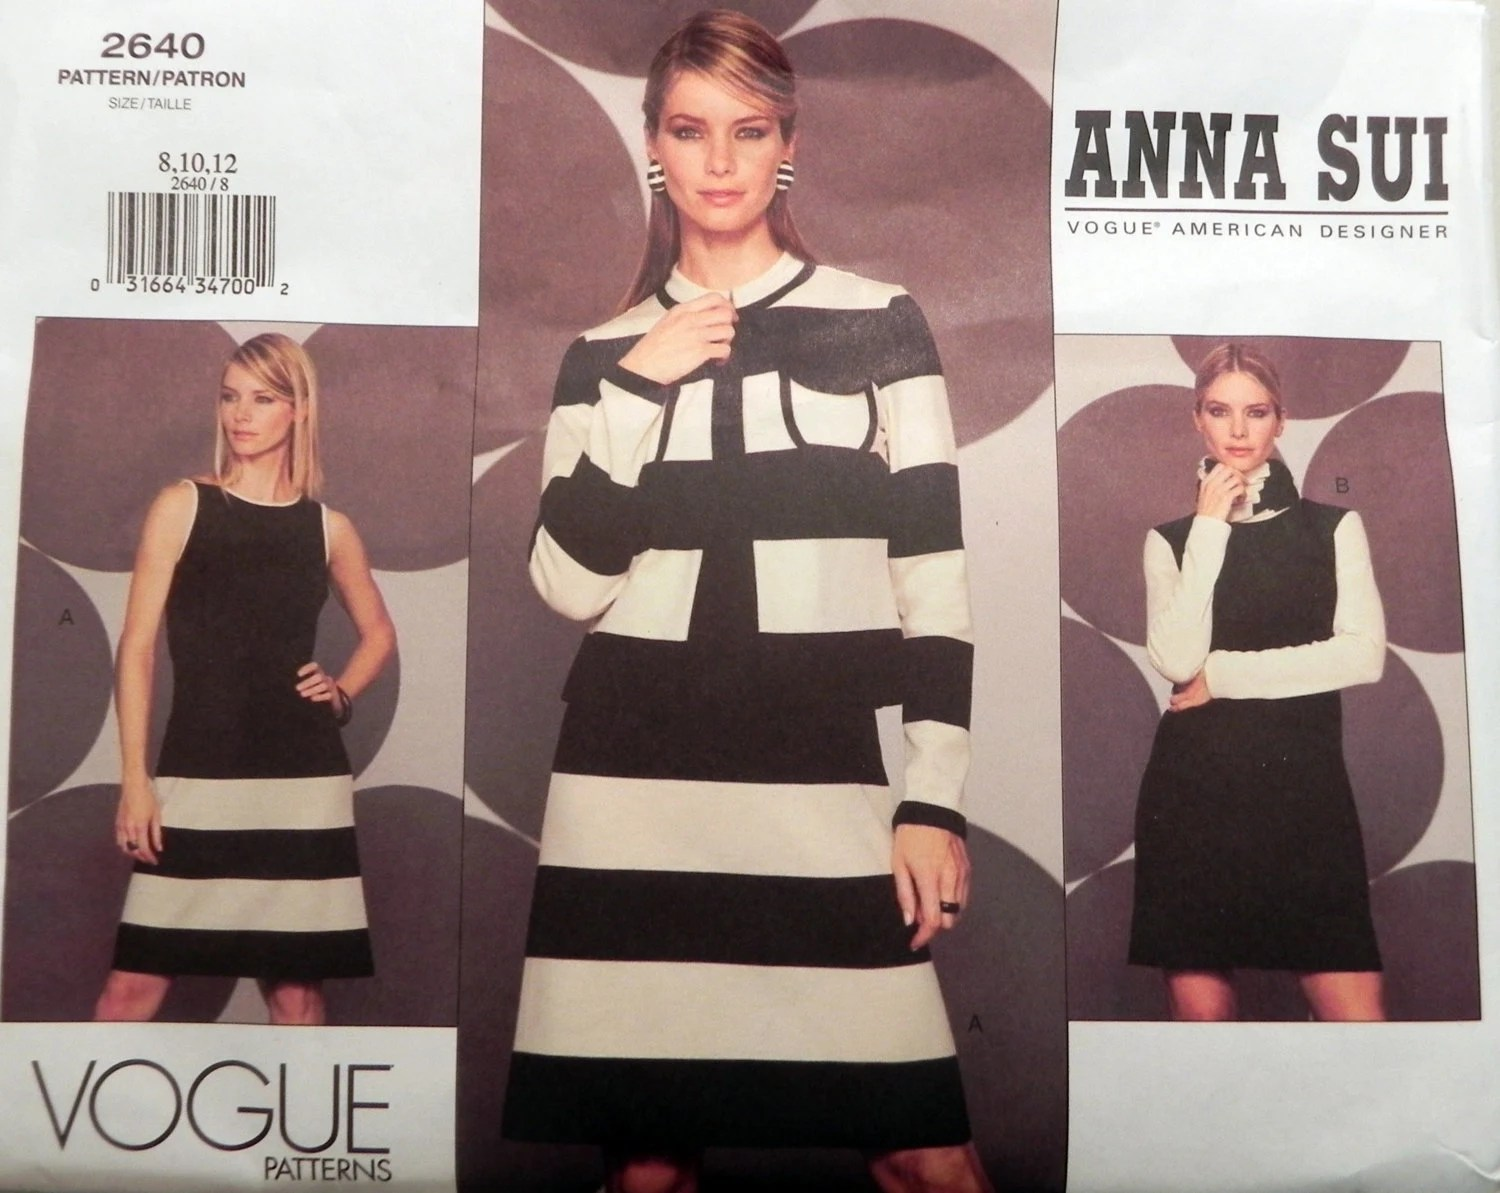 Anna Sui pattern for a striped jacket and dress - Vogue 2640